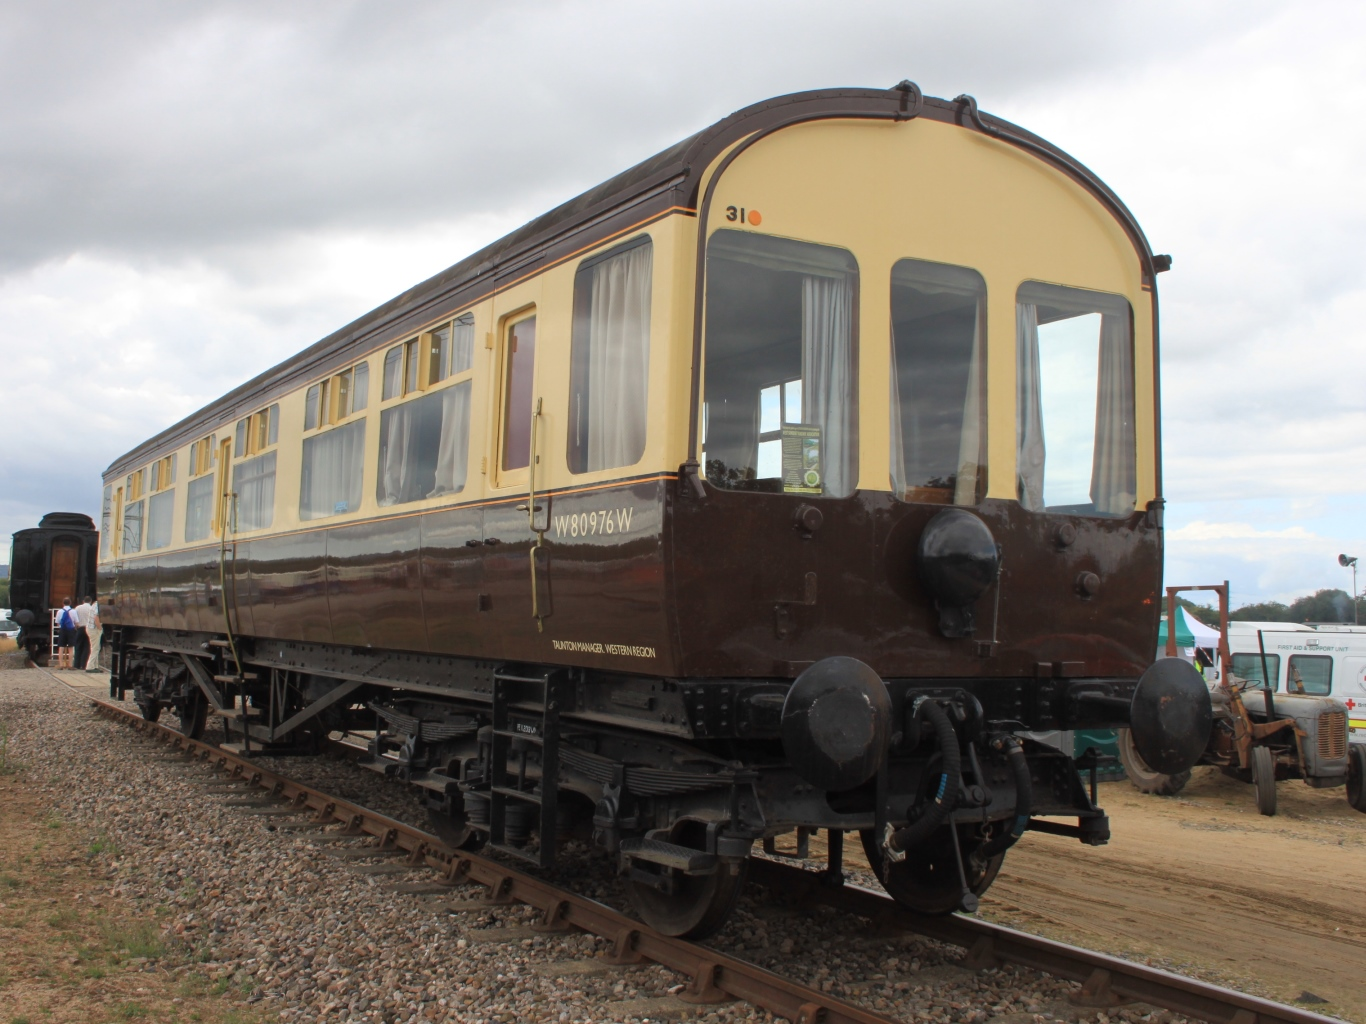 GWR Q13 inspection saloon 80976 at Norton Fitzwarren.JPG